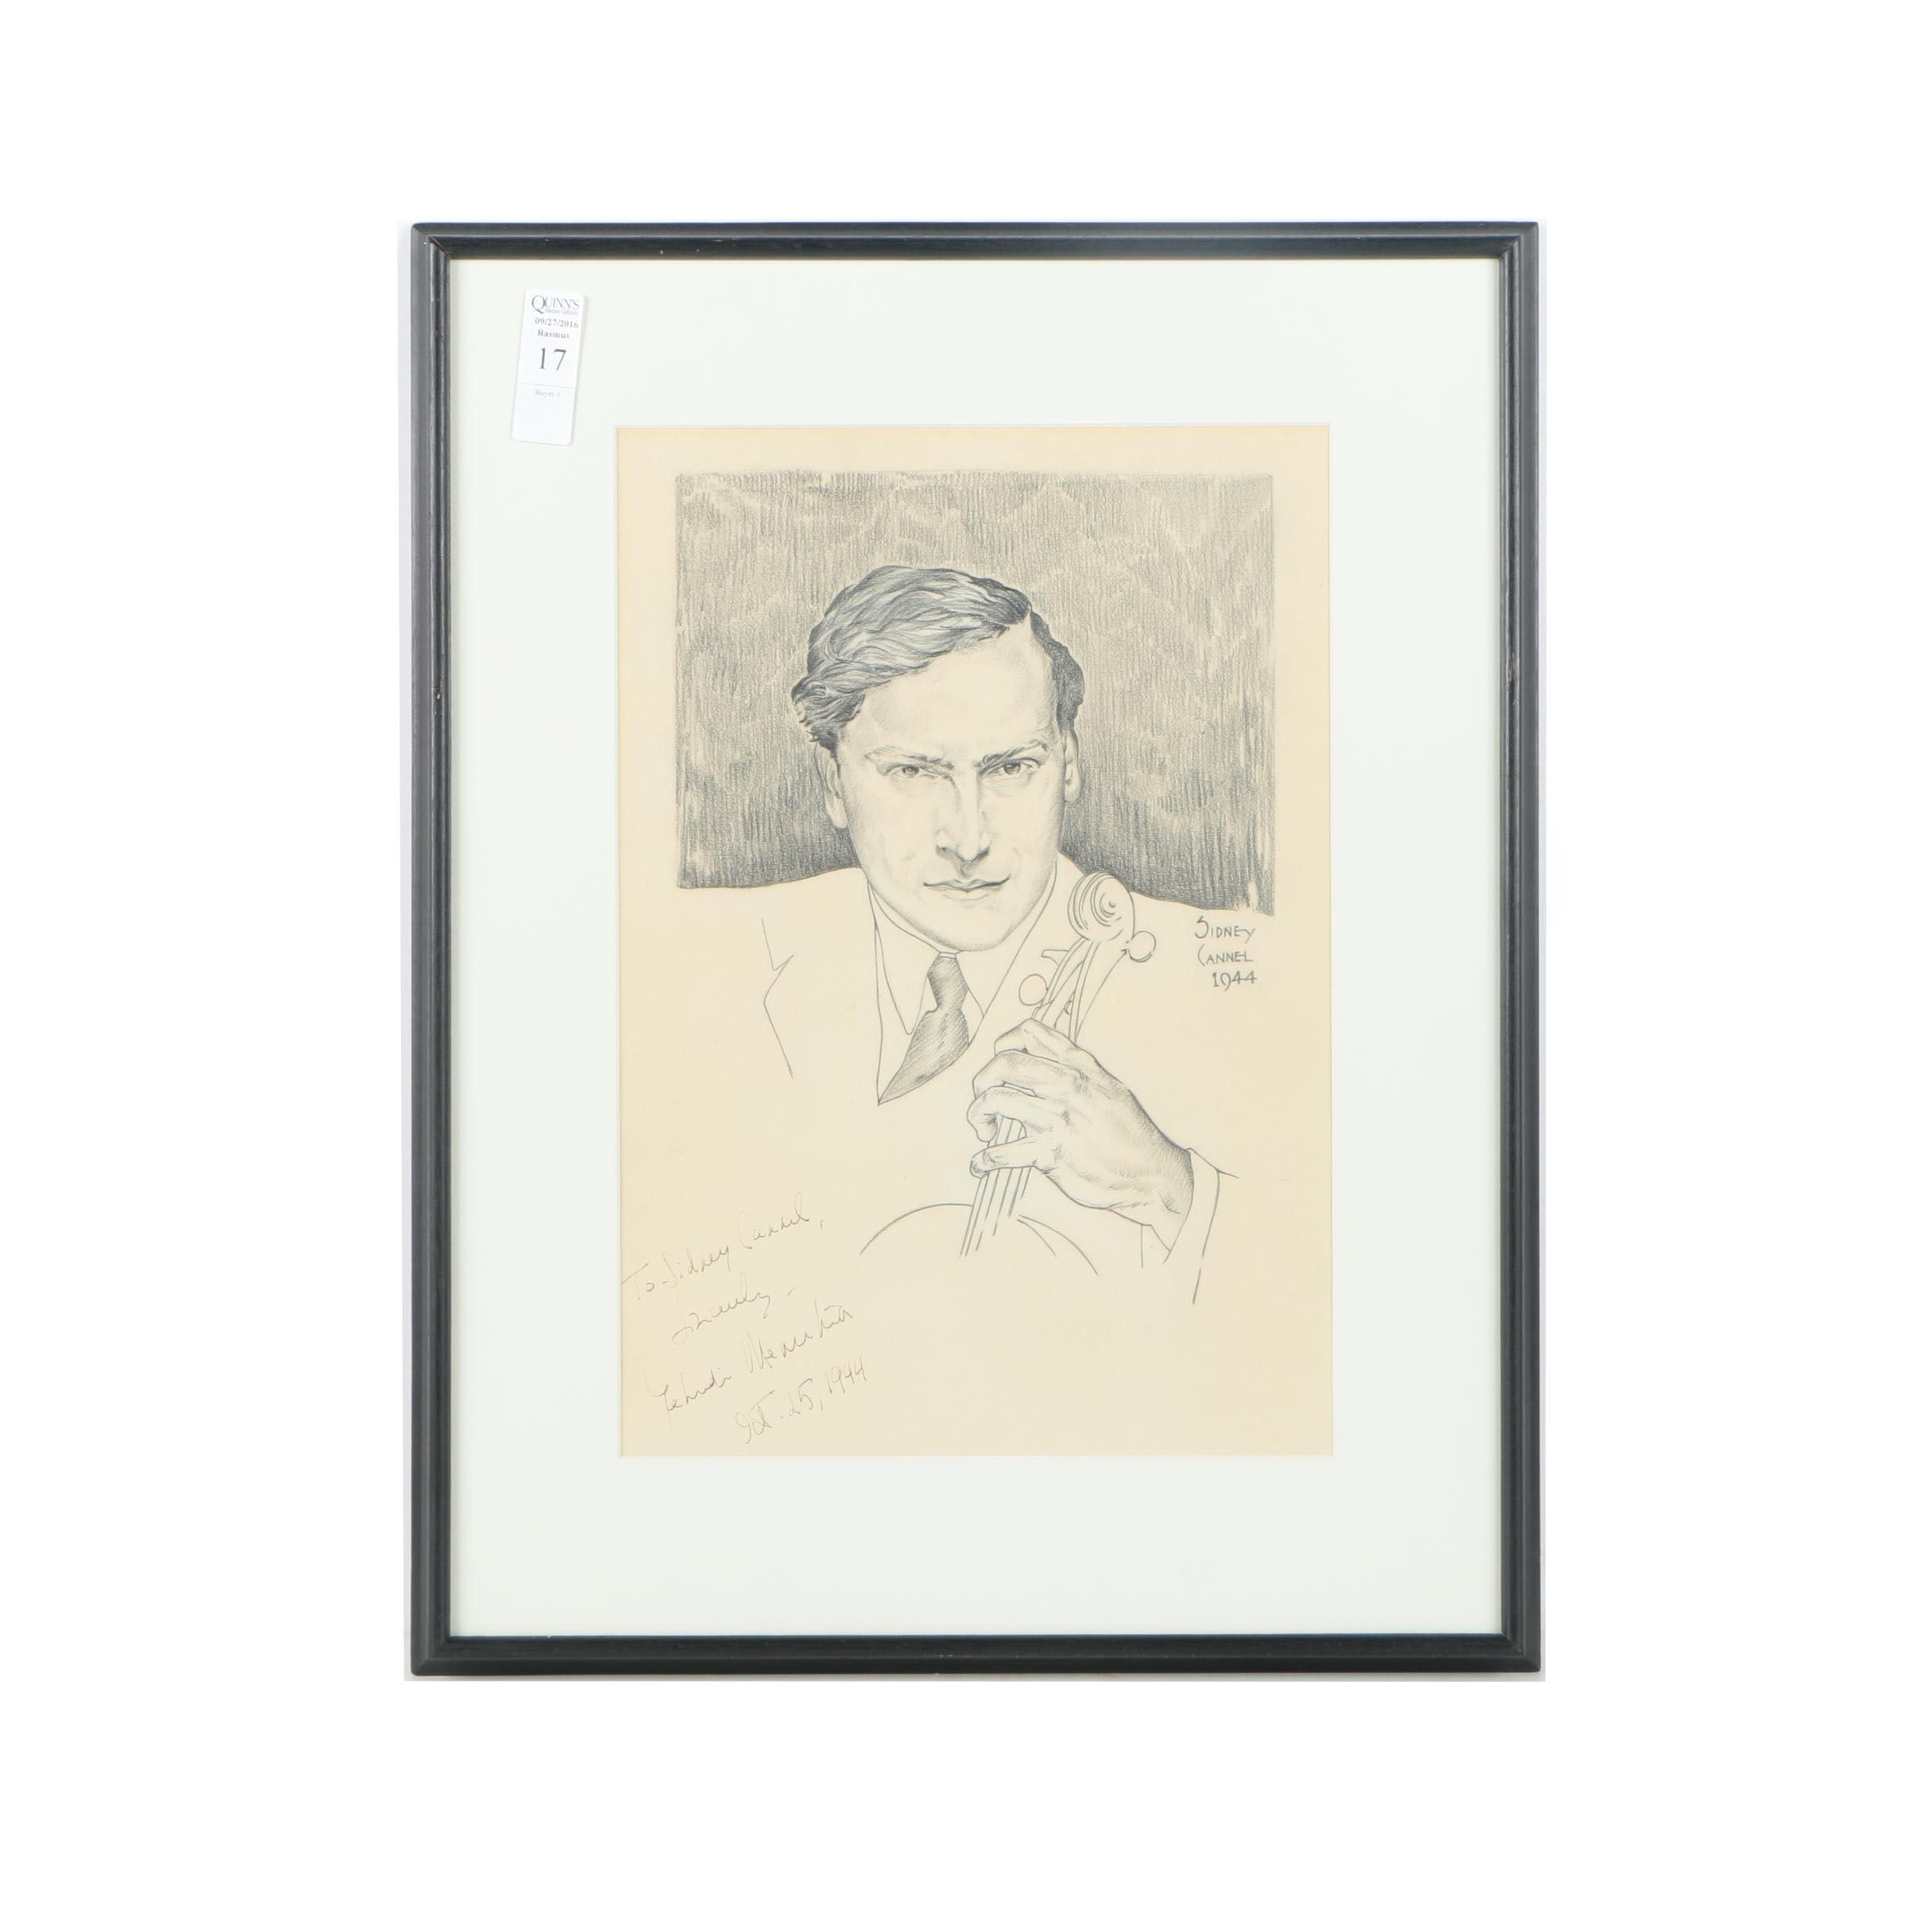 Sidney Cannel Autographed 1944 Charcoal Drawing of Yehudi Menuhin